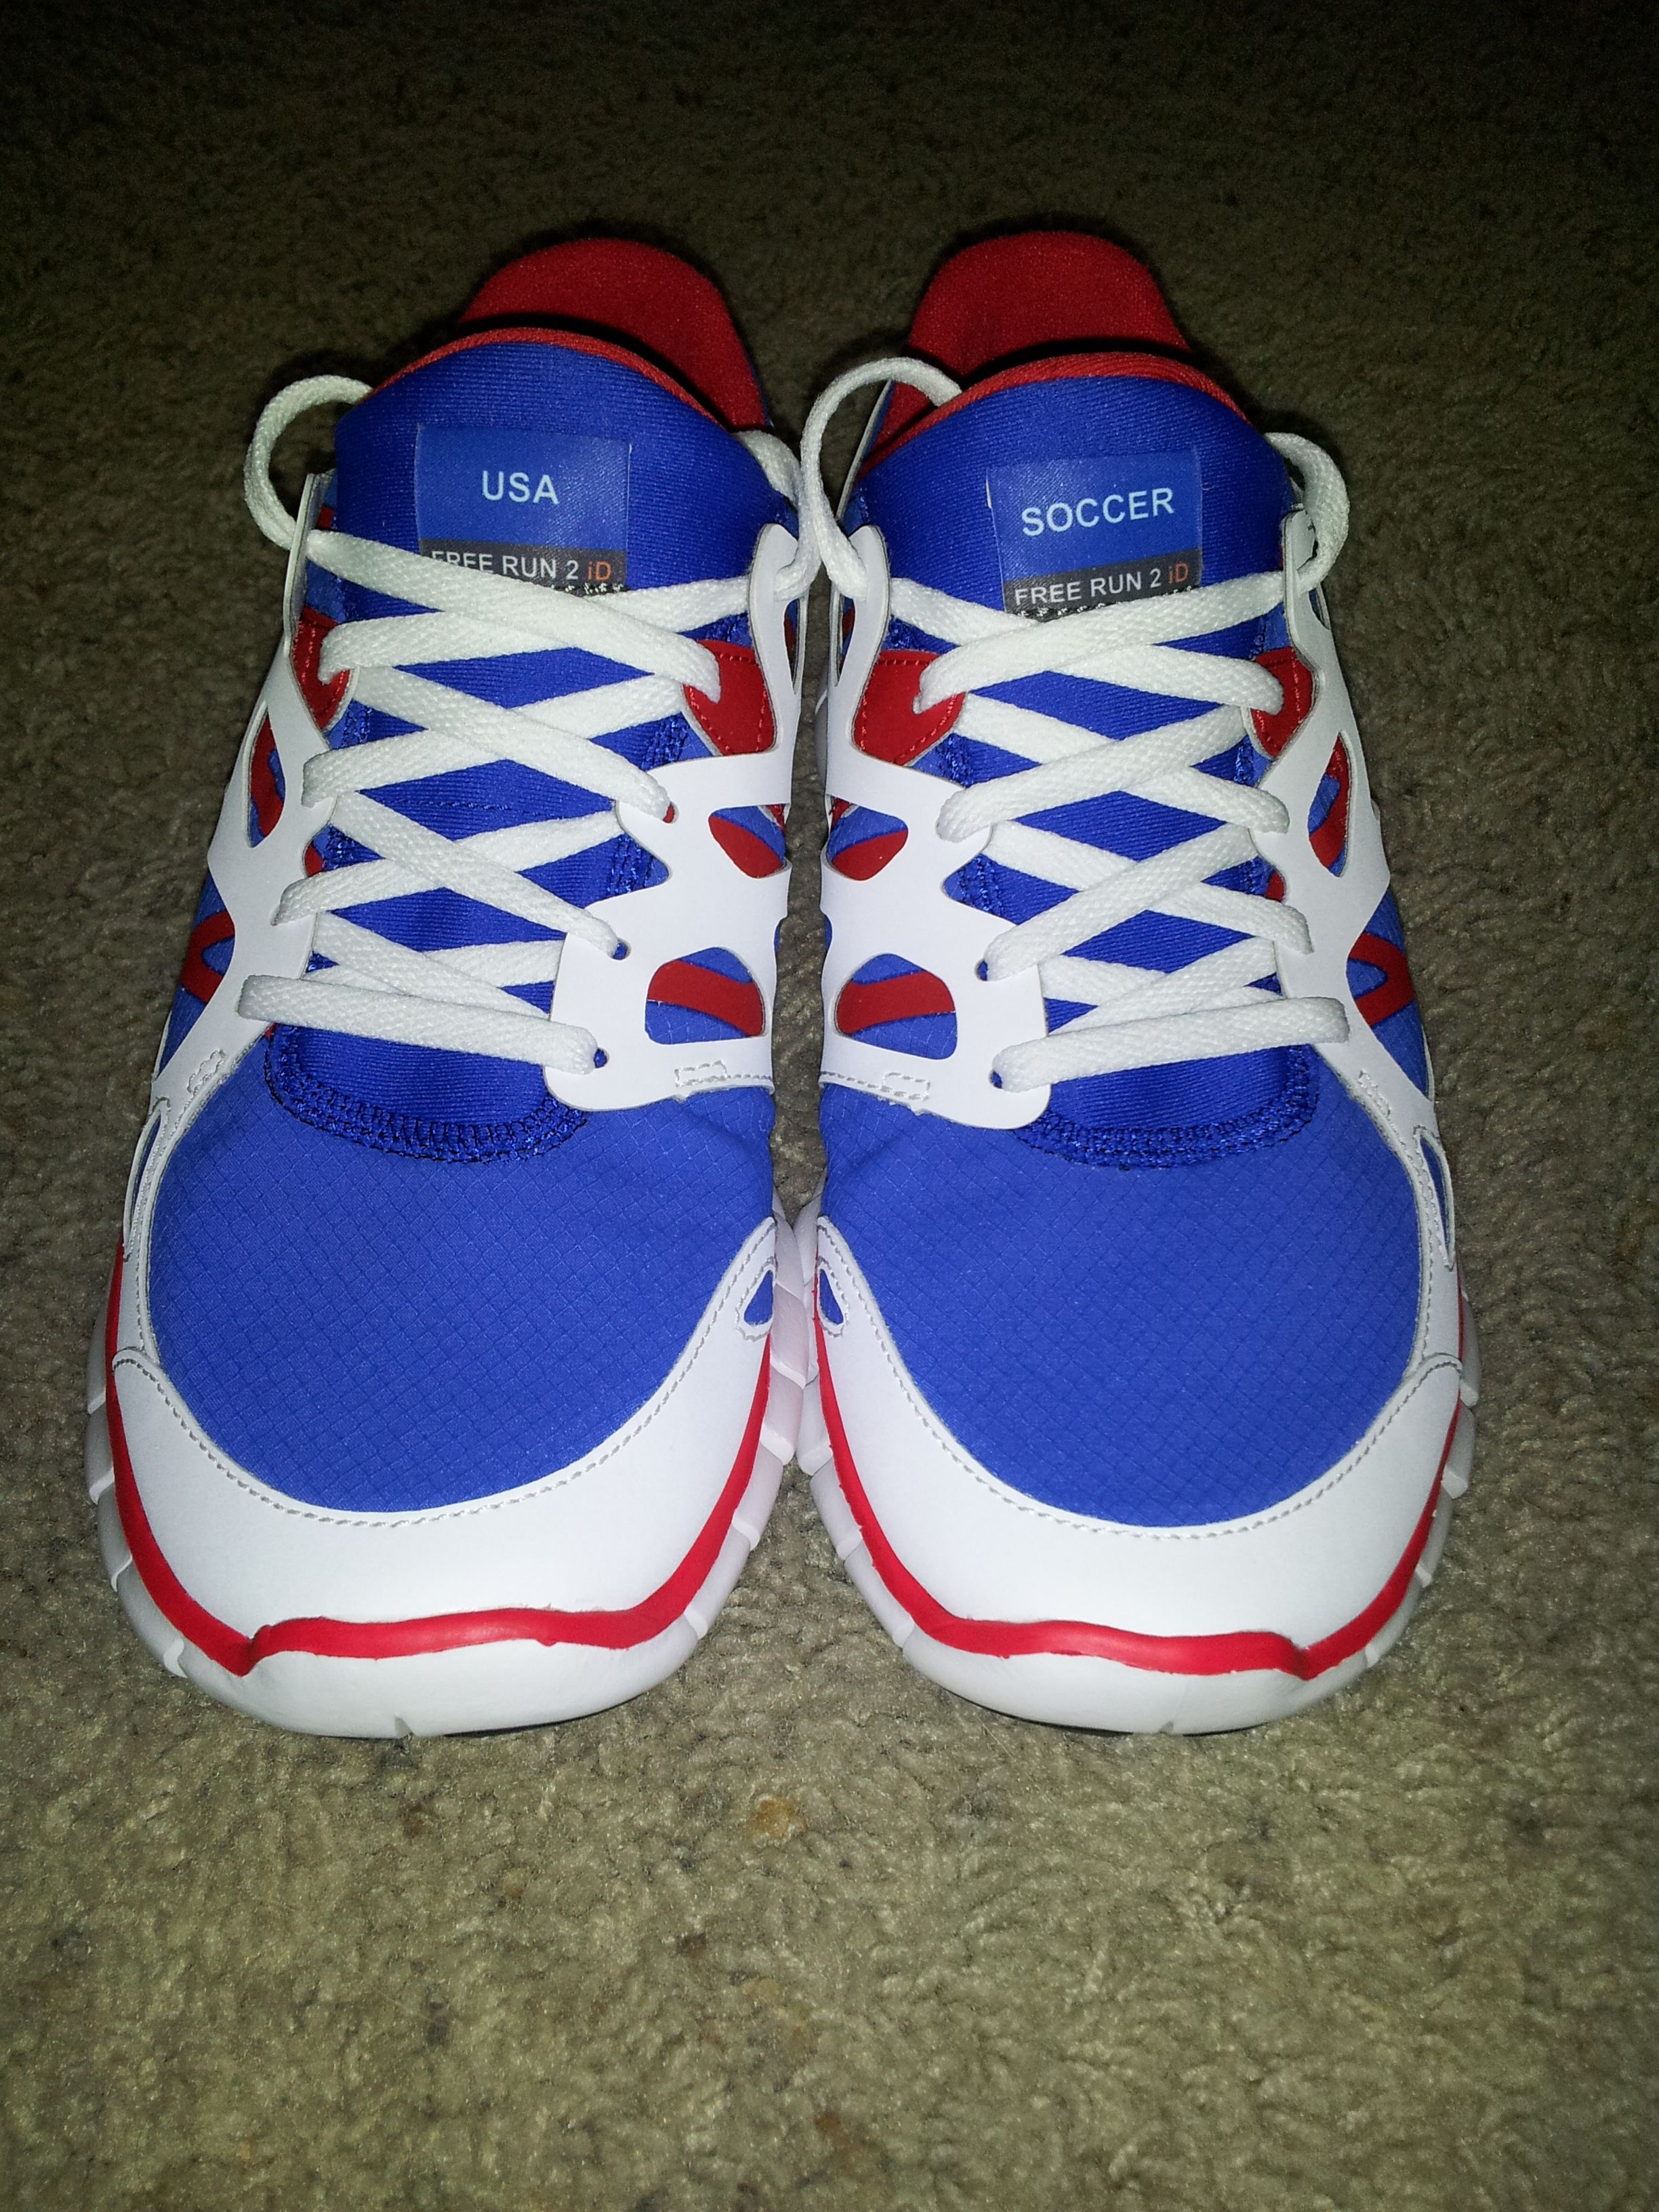 USA soccer shoes I designed for the London Summer Olympics ...